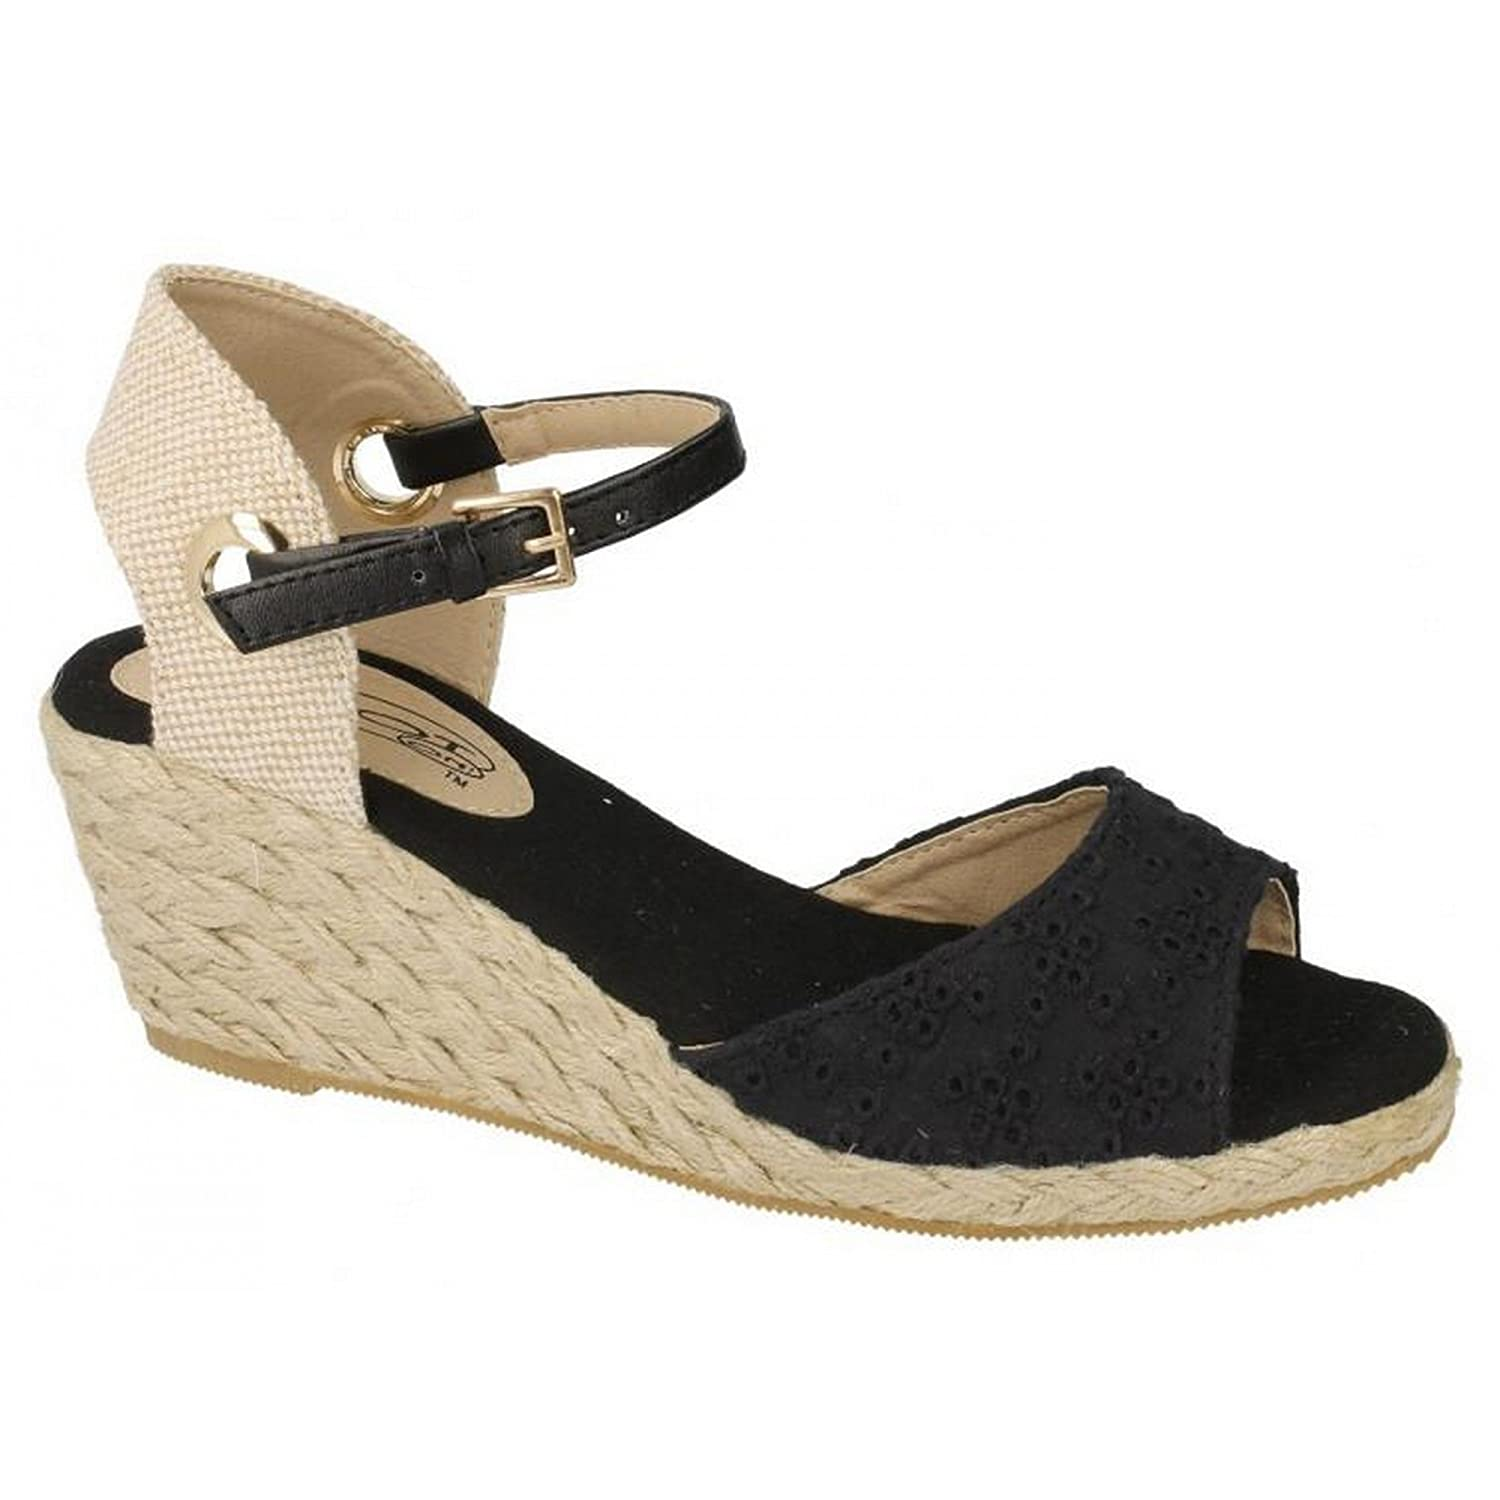 3e3279a20e9e Spot On Womens Ladies Low Wedge Platform Sandals With Bucke Ankle Strap   Amazon.co.uk  Shoes   Bags